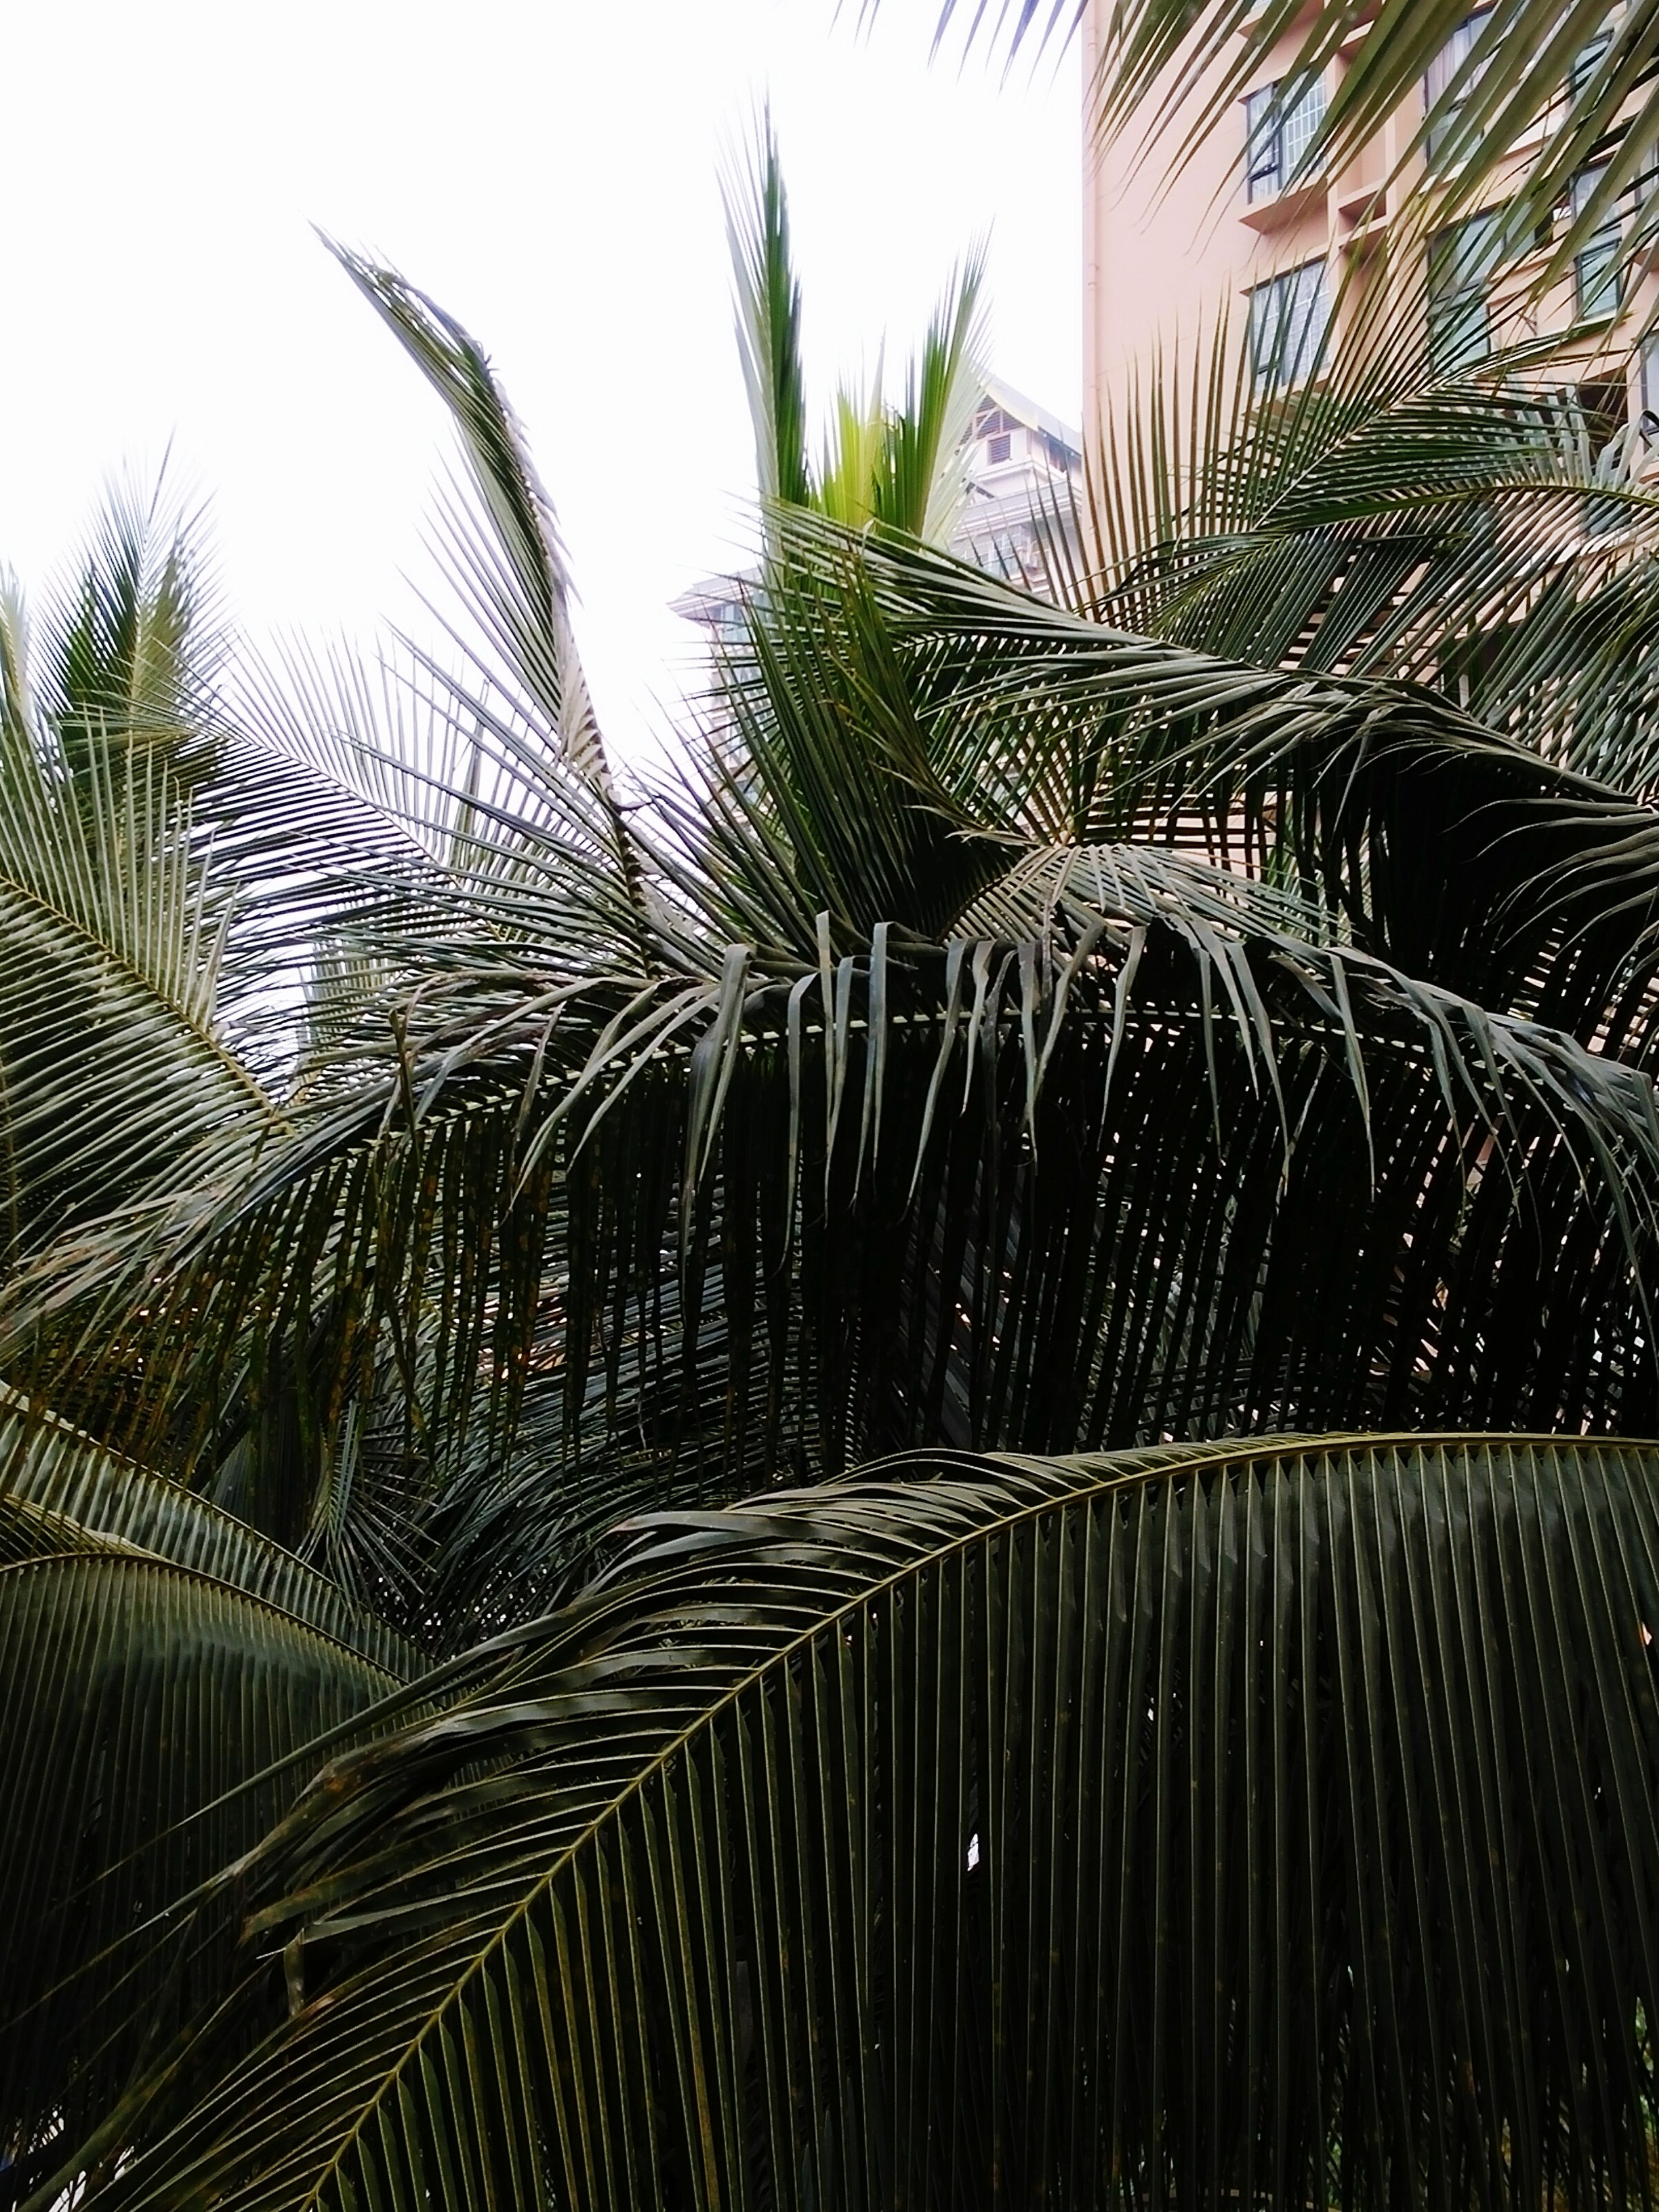 growth, low angle view, leaf, nature, tree, clear sky, pattern, day, plant, palm tree, outdoors, sky, close-up, building exterior, no people, wet, sunlight, spider web, built structure, palm leaf